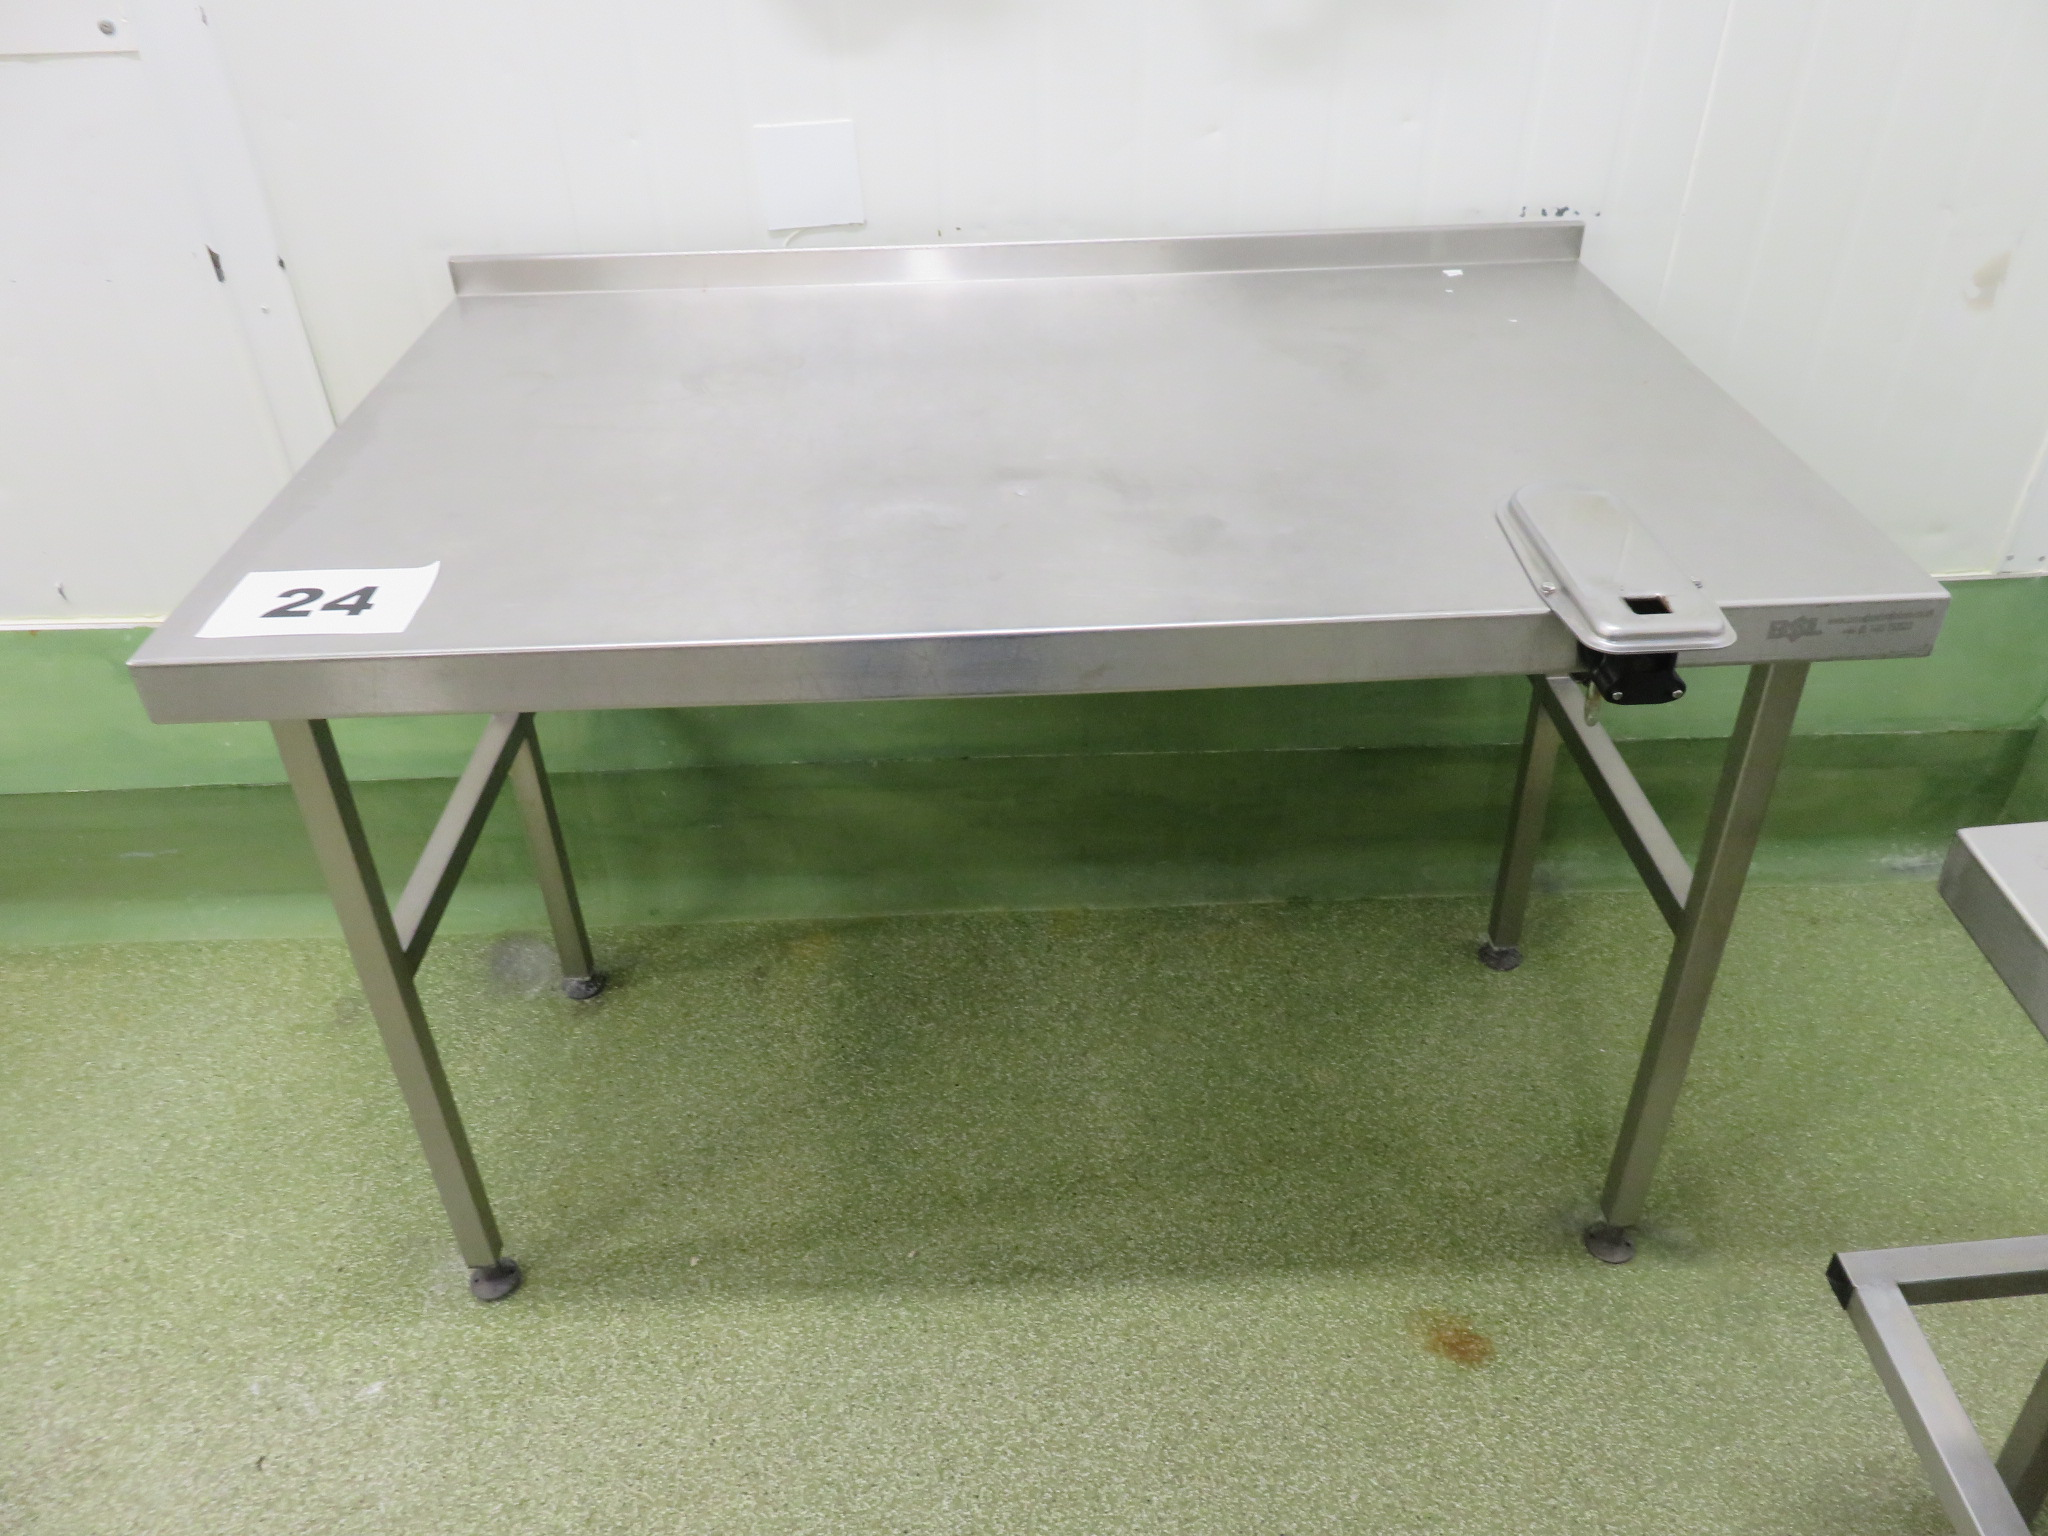 Lot 24 - S/s table. LO £15.